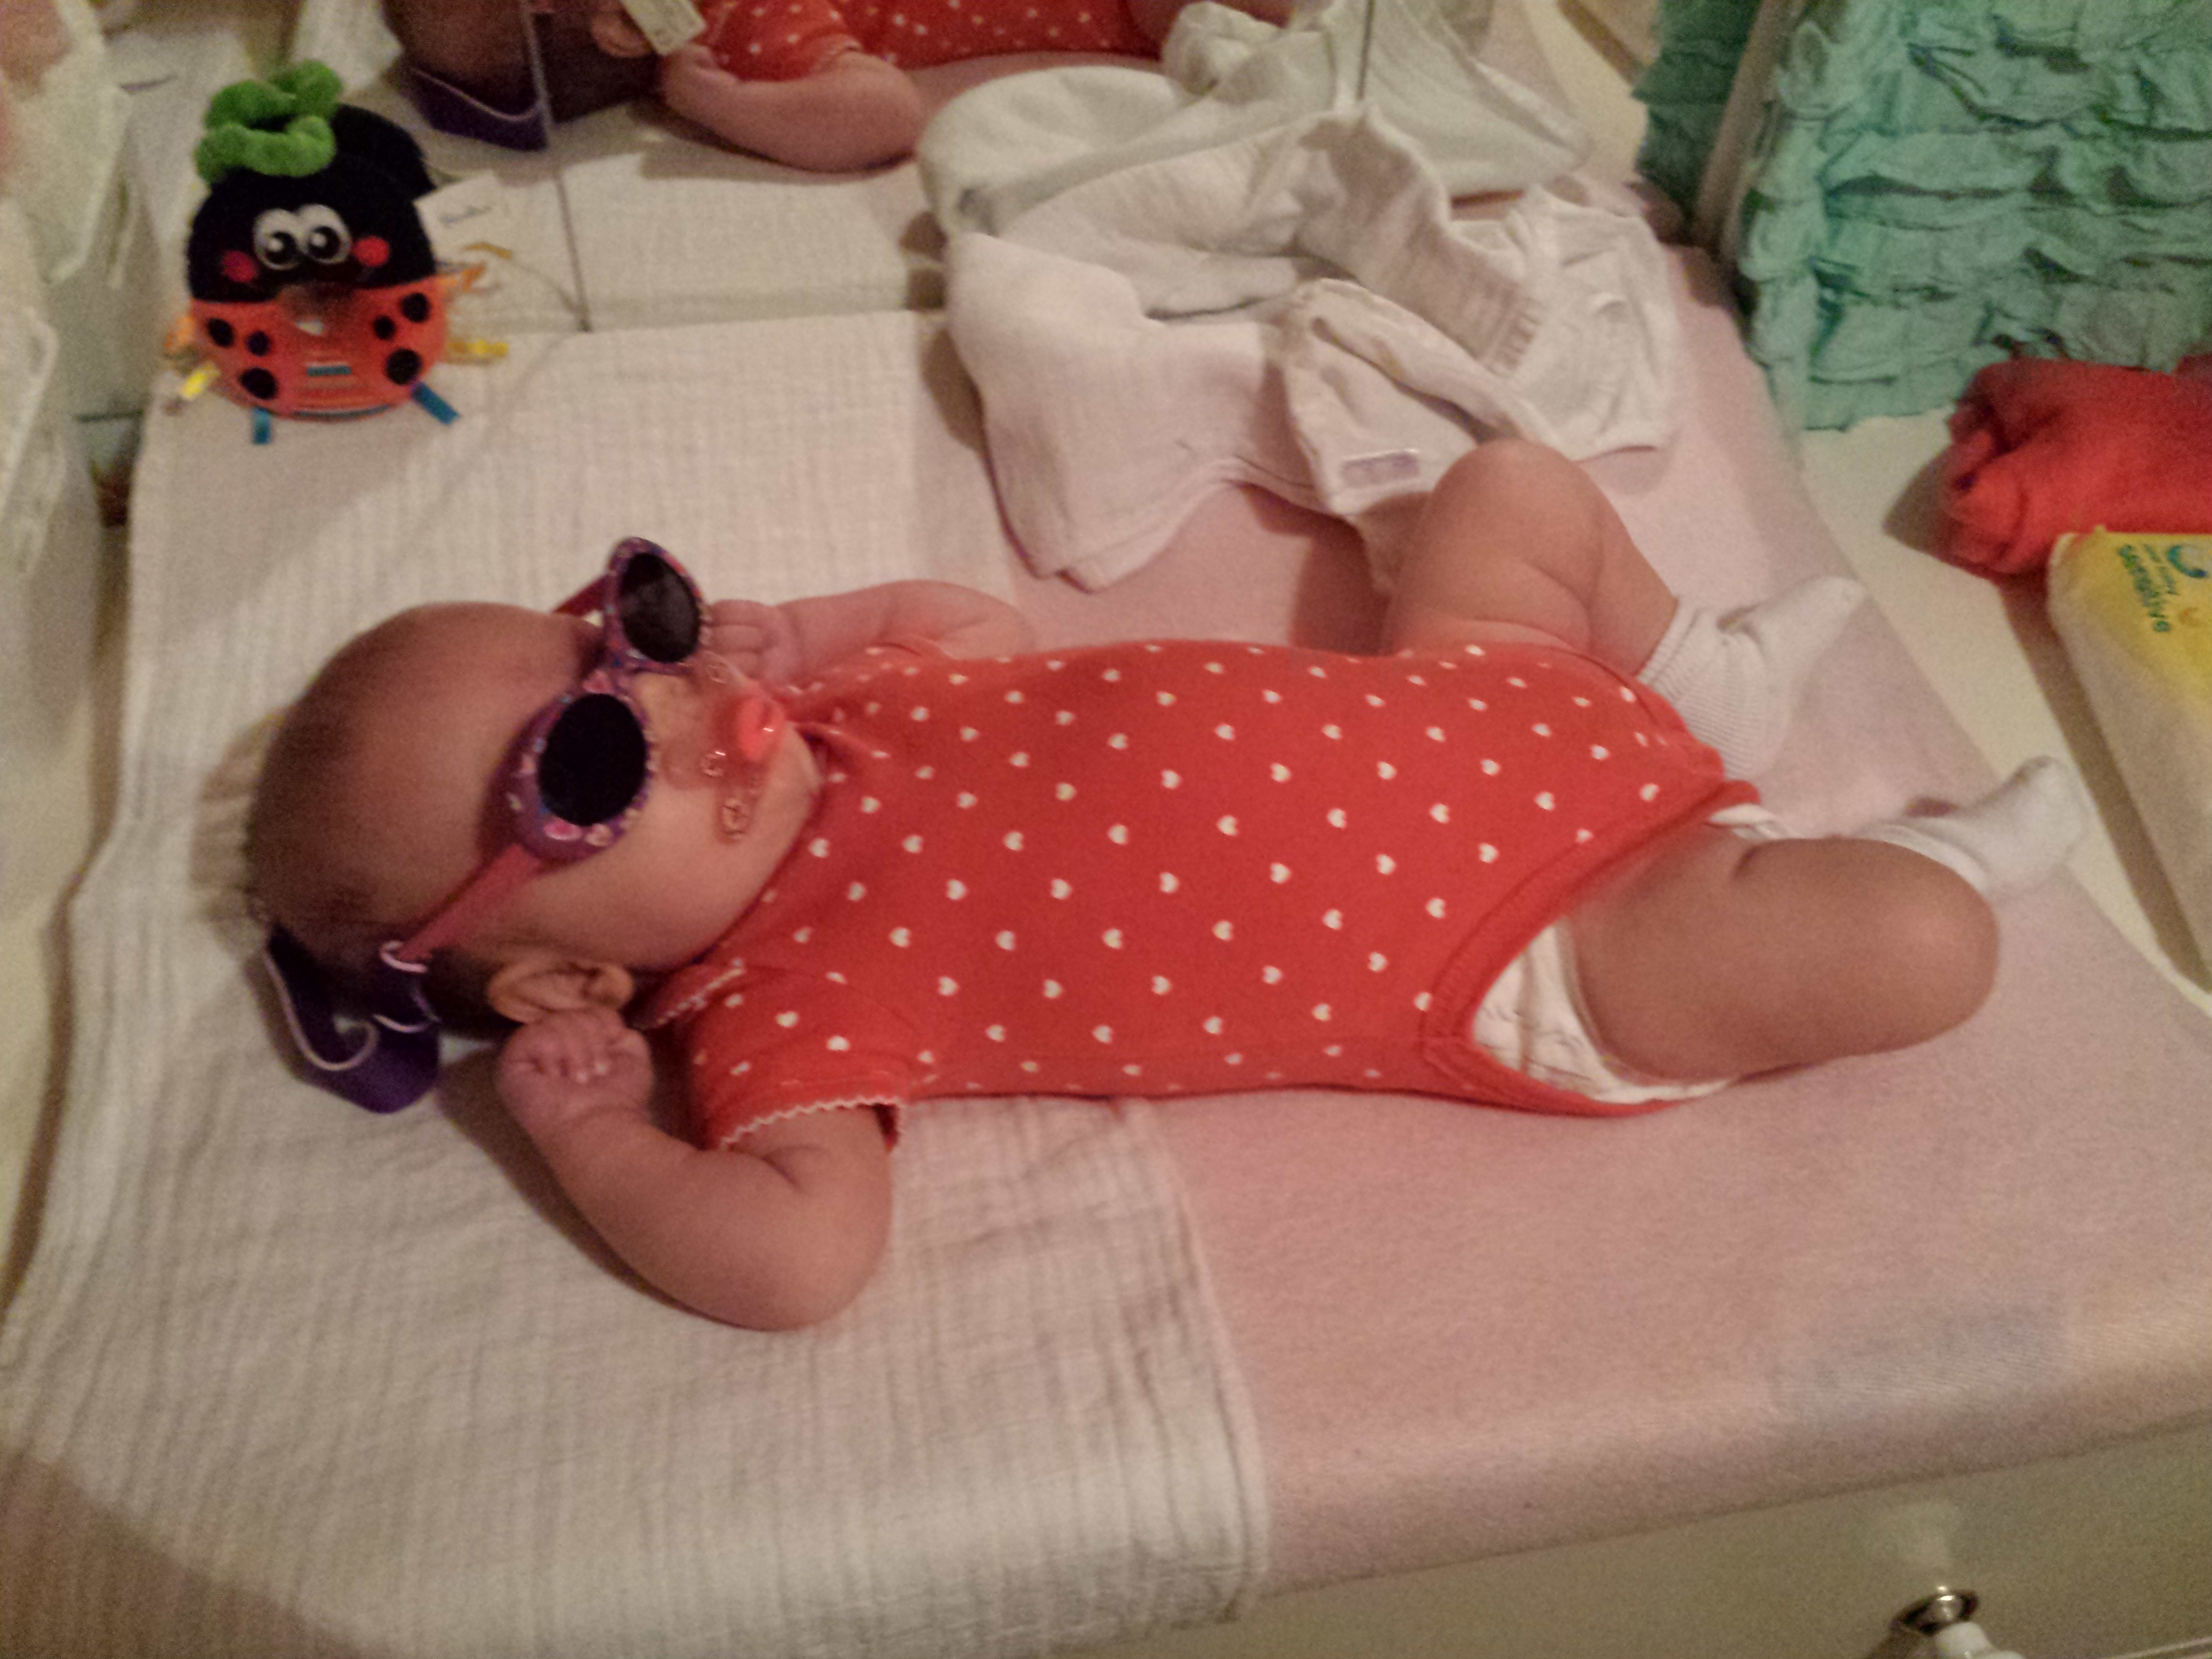 My mum gave Lola her first sunglasses, now she already acts like a dive...lol